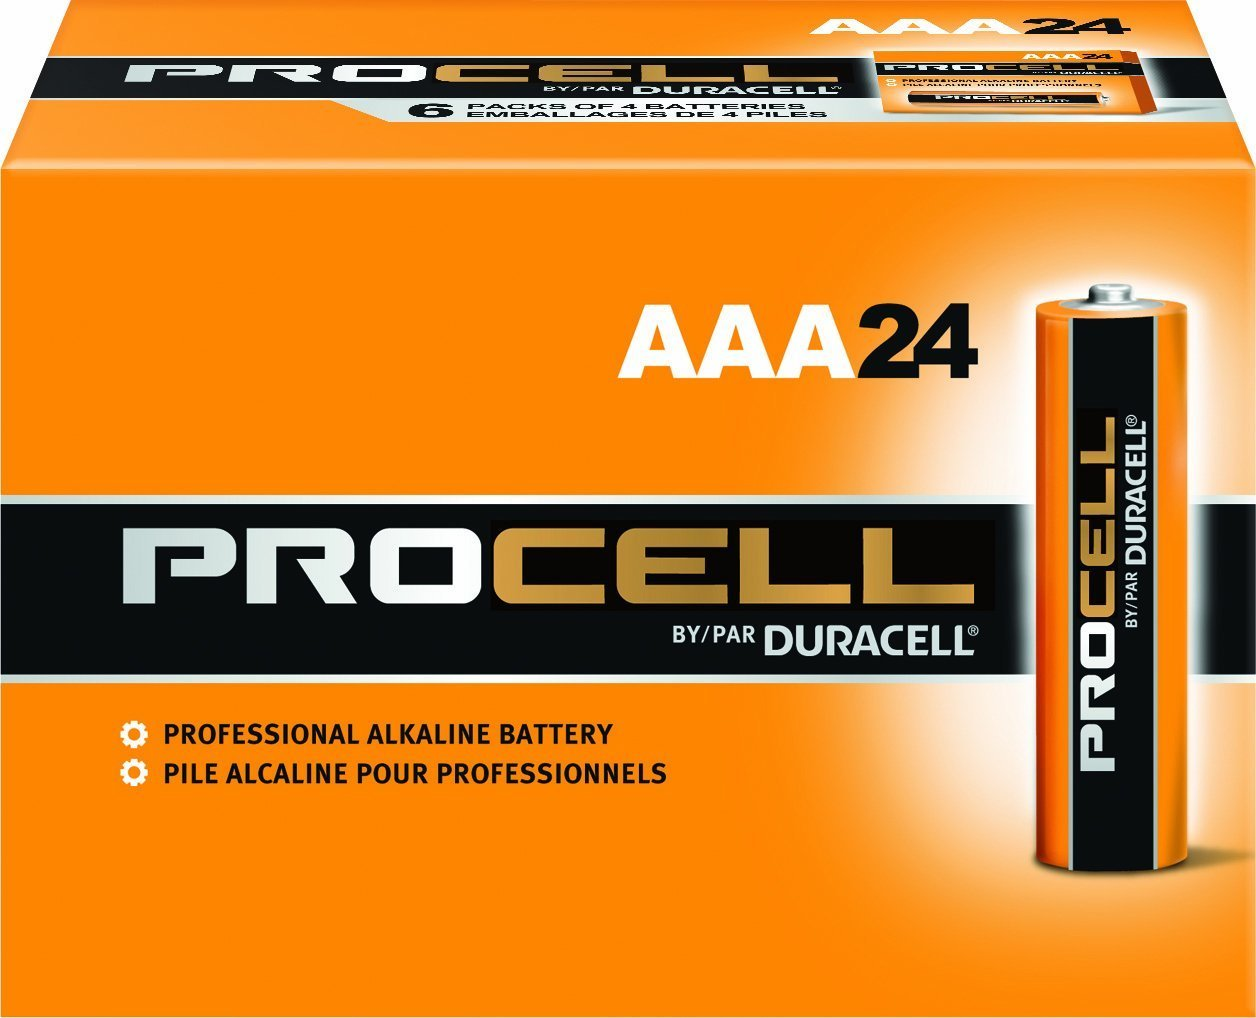 Duracell New Value Size Package Procell 120 Count New Super Size Package (Size-AAA)